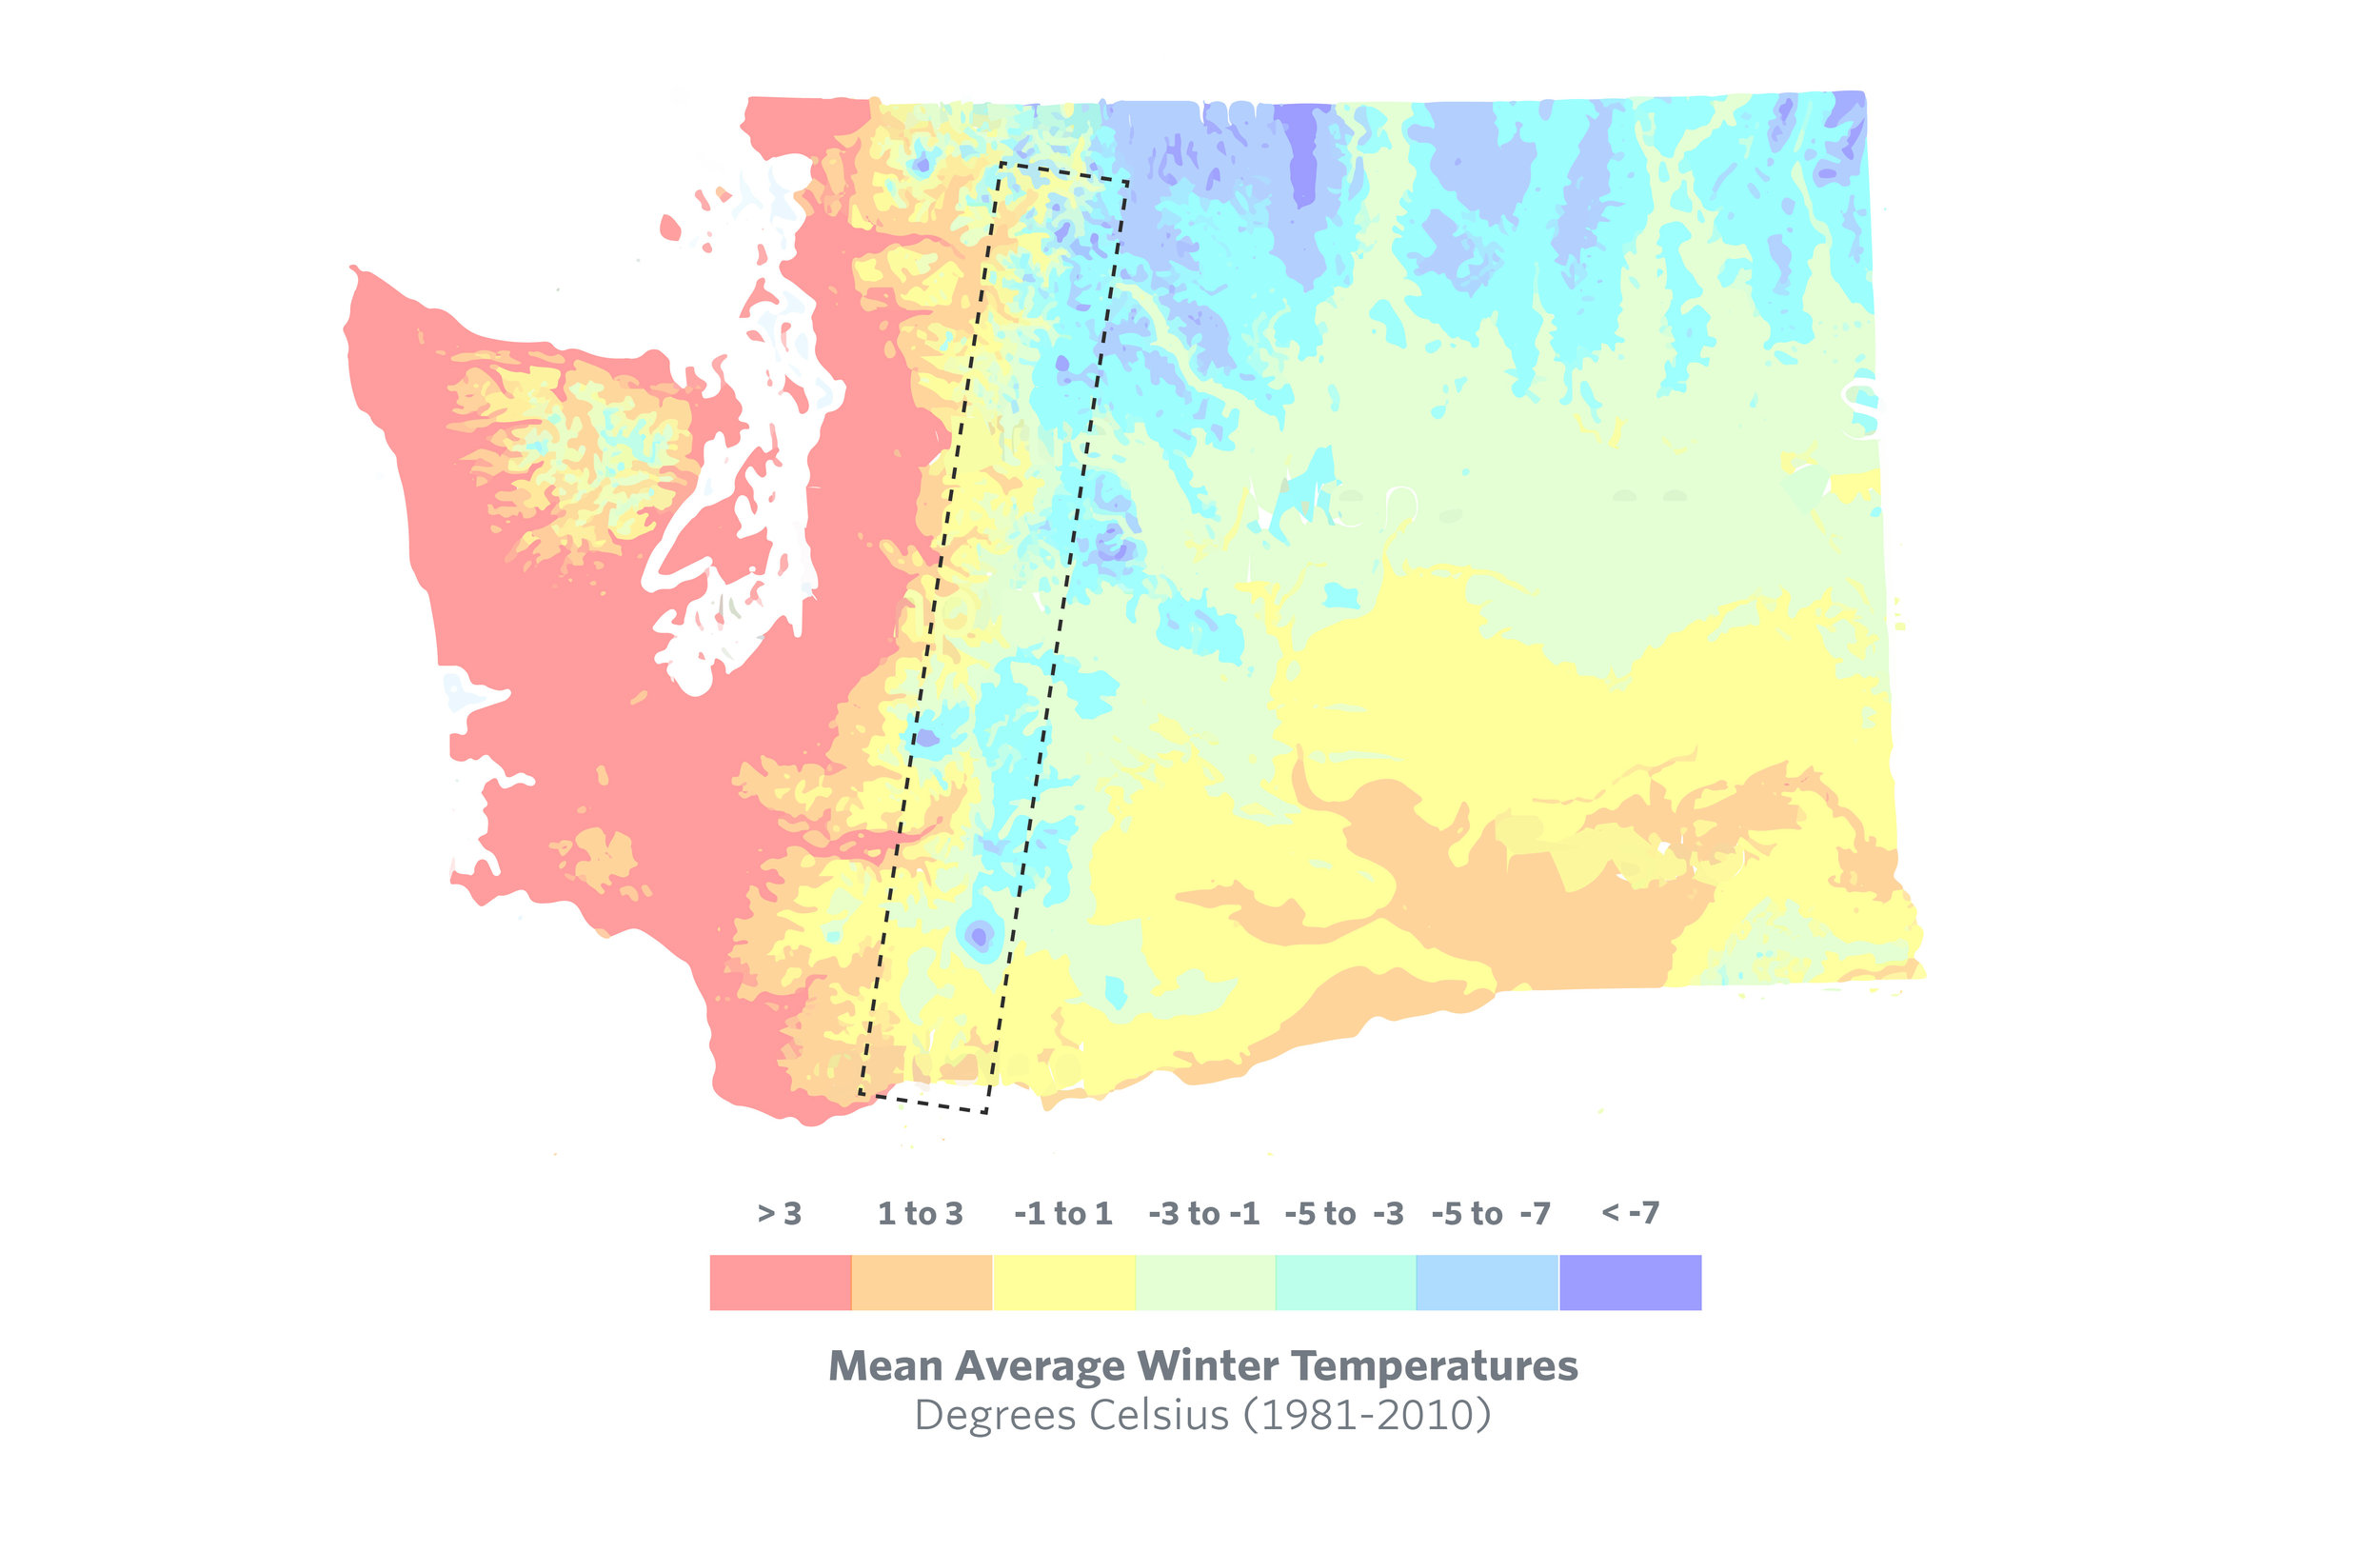 In the Eastern Cascades, there are no data linking the depth and duration of snowpack to tree canopy cover. This area represents a unique temperature zone where the snowpack-tree canopy relationship has not yet been explored.